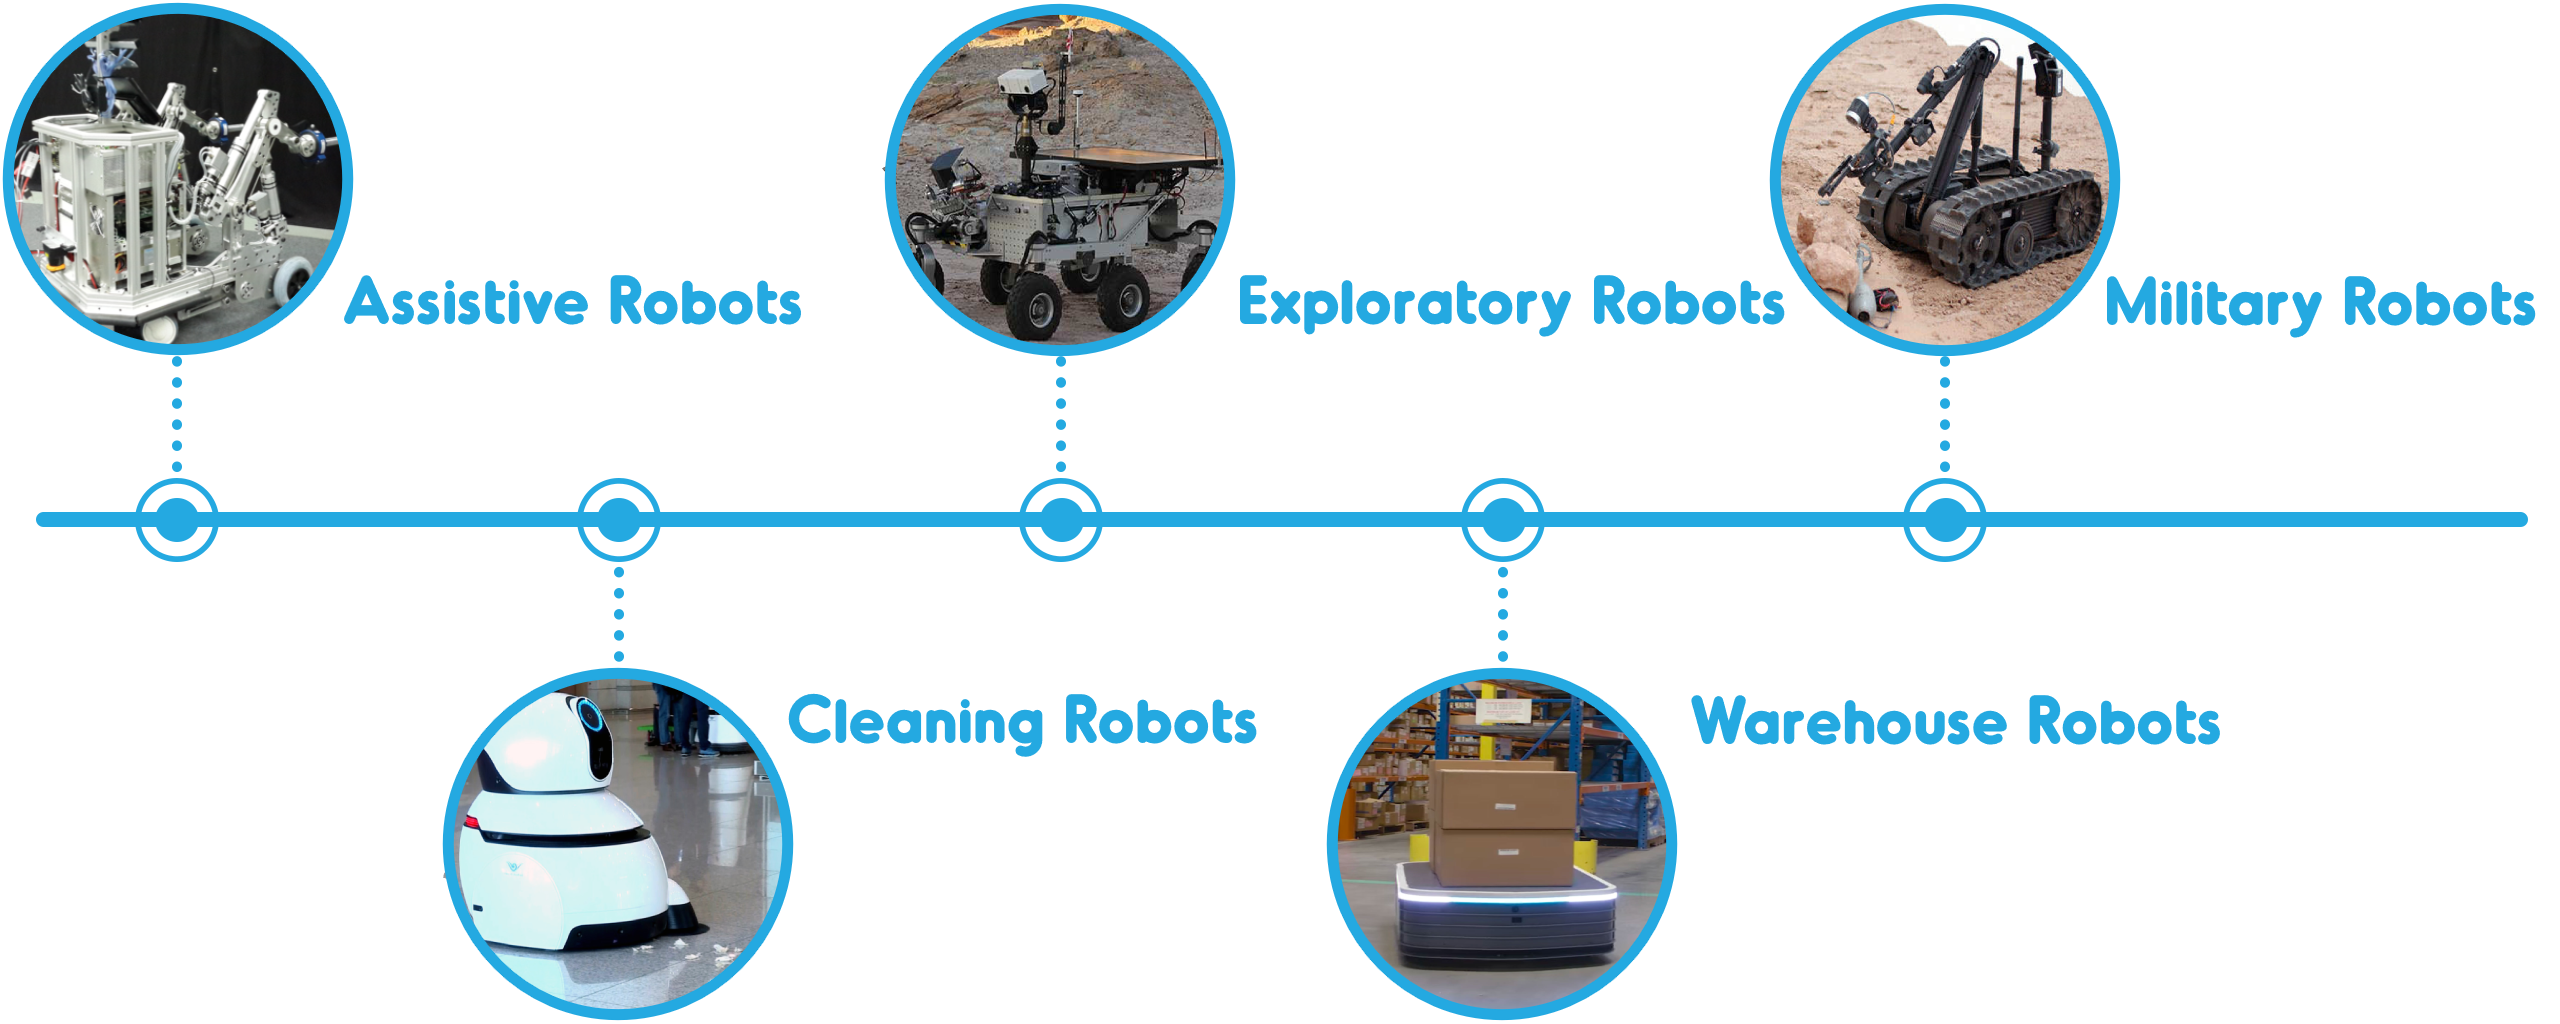 Target Markets - Assistive Robots, Cleaning Robots, Exploratory Robots, Military Robots, Warehouse Robots